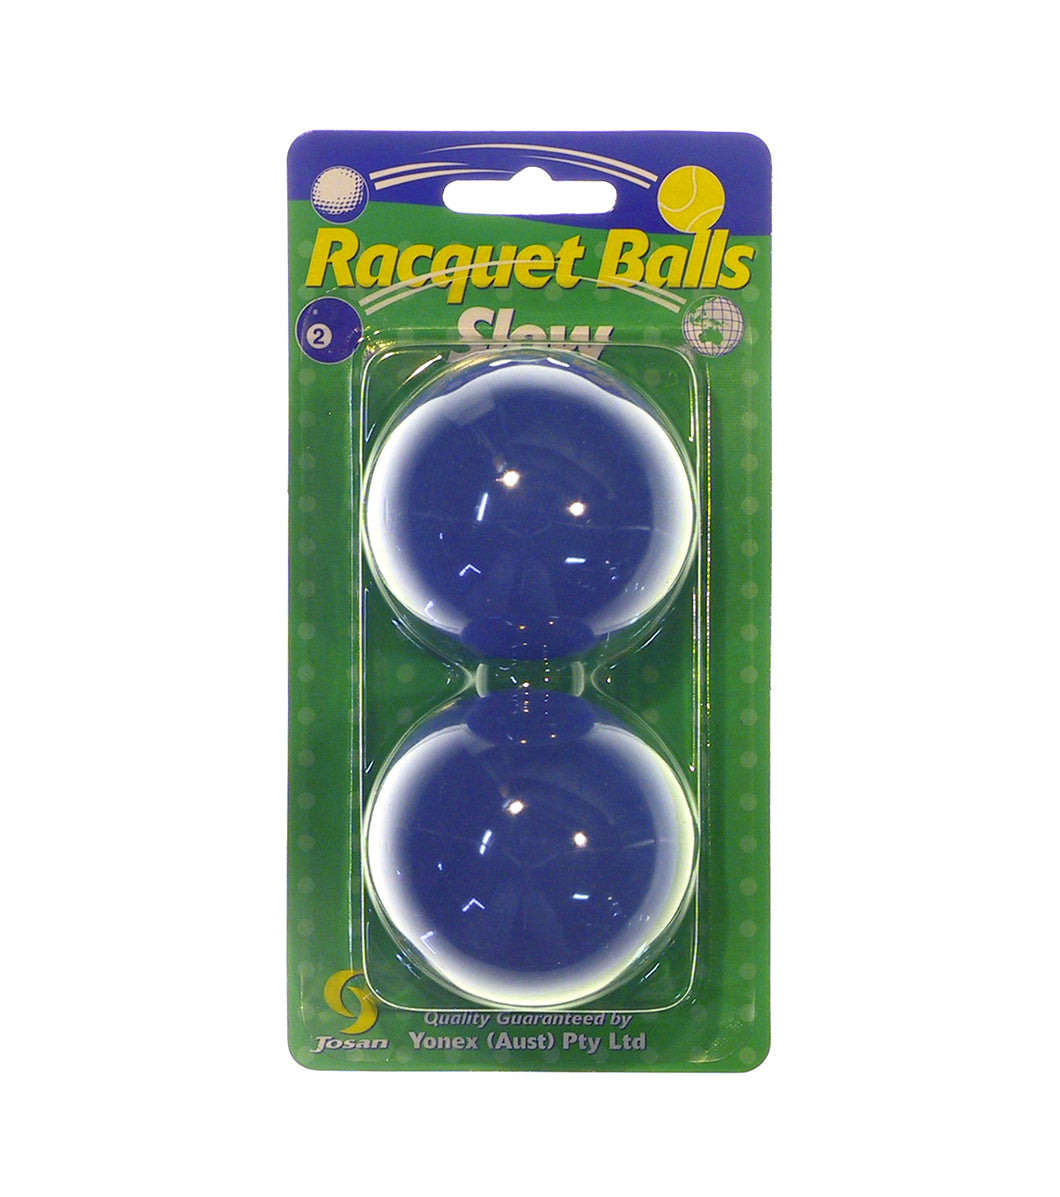 Slow Racquet Ball